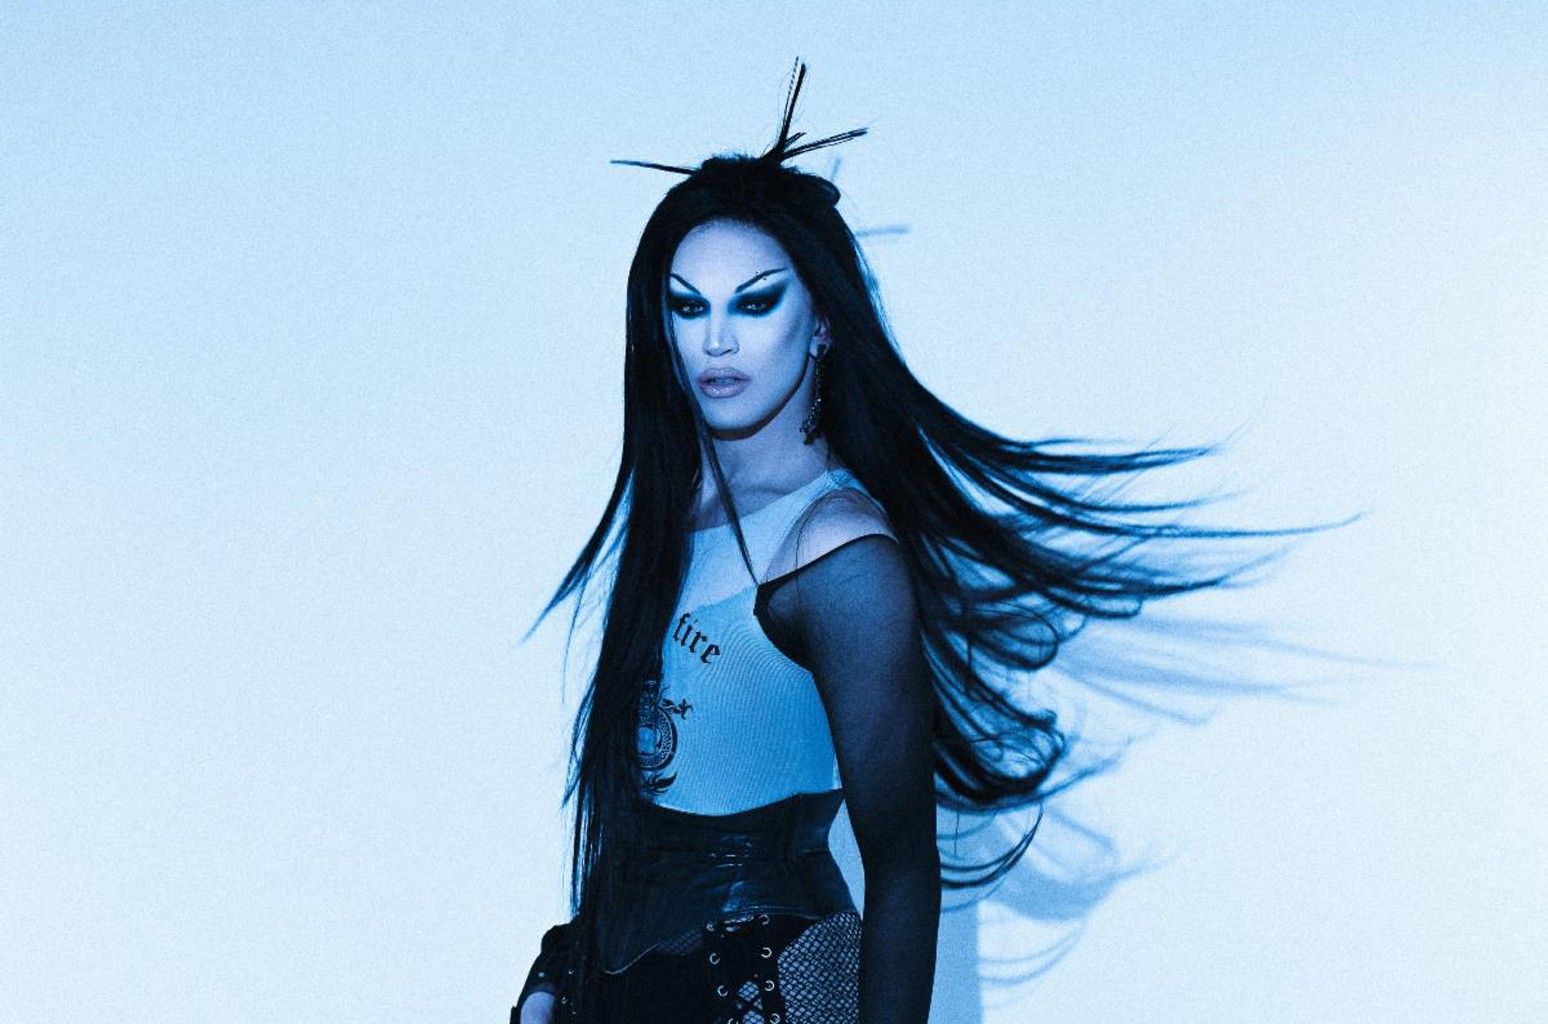 'Drag Race' Star Aquaria Transformed Into Evanescence's Amy Lee Before Interviewing Her